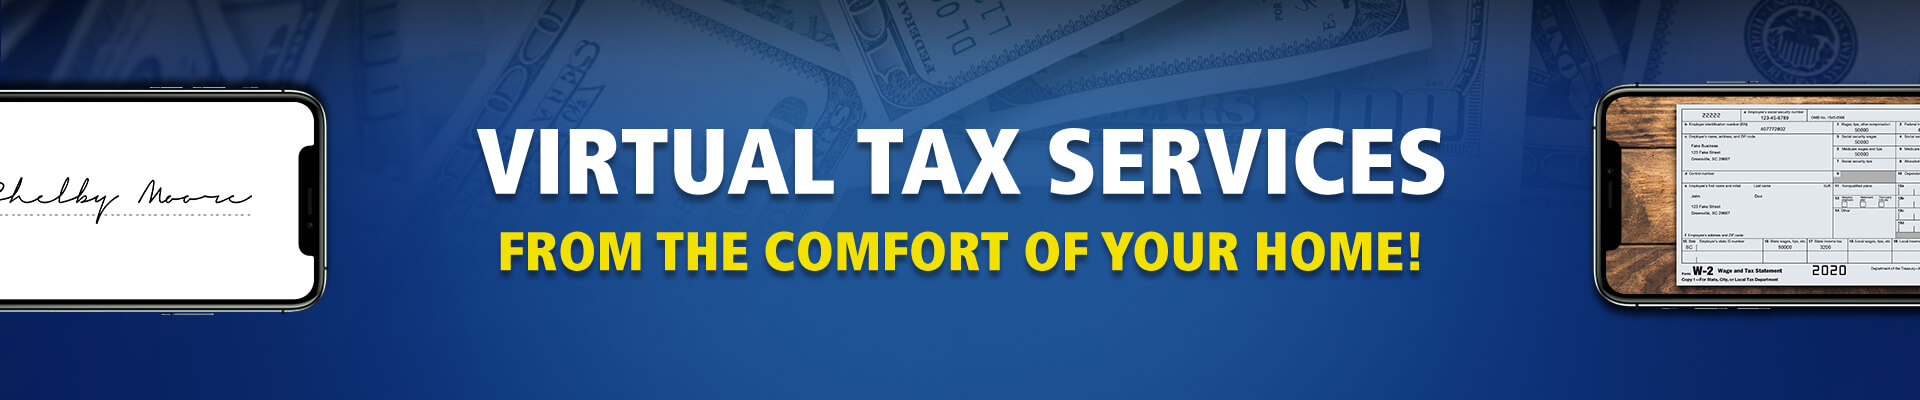 We can prepare taxes anywhere, anytime. Click here to find out the details.